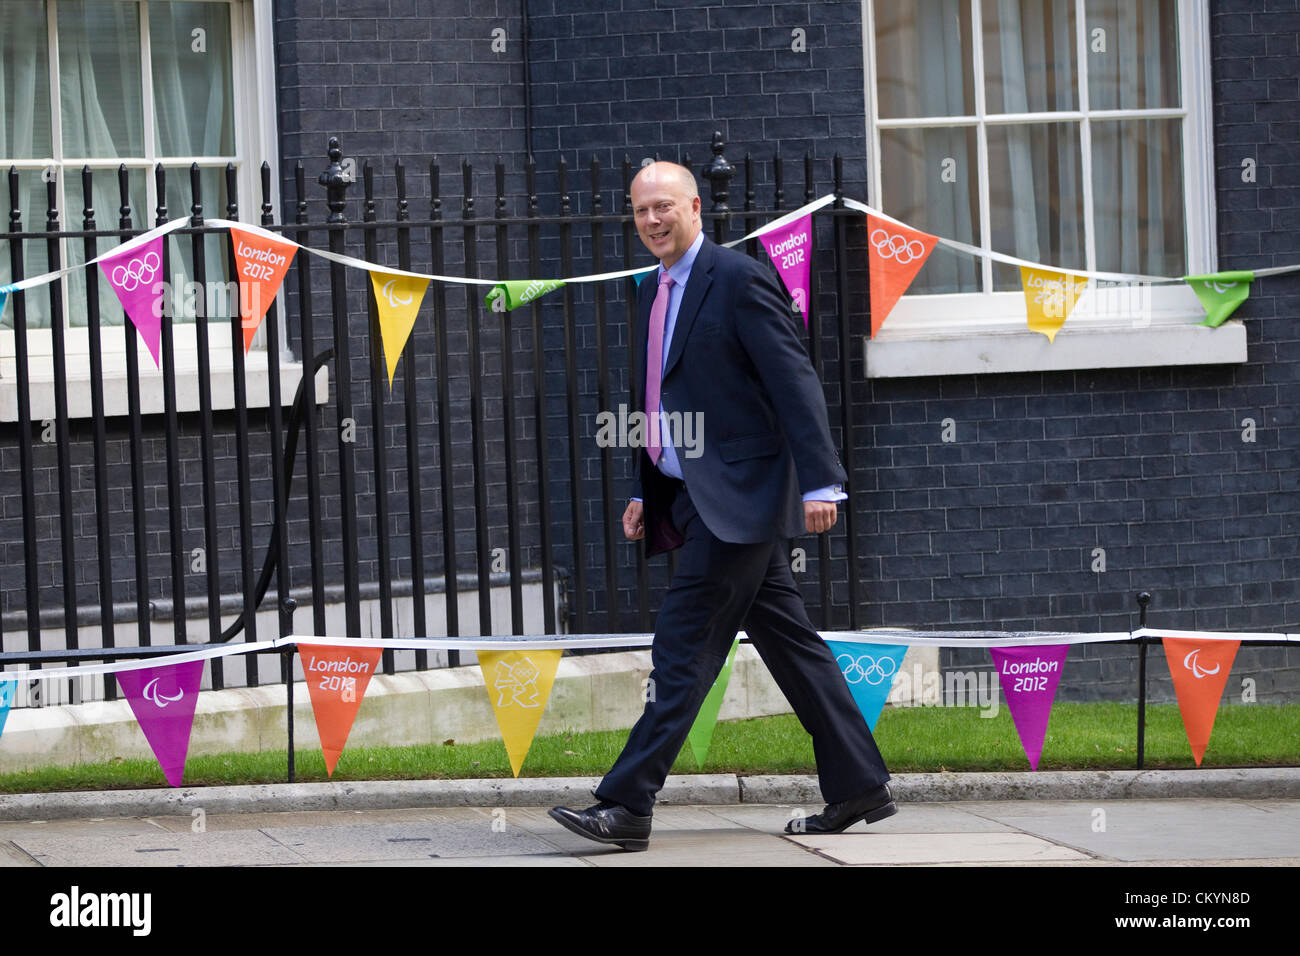 Cabinet Reshuffle, Downing Street, London, England, UK. 4th September 2012. Chris Grayling arrives in Downing Street - Stock Image